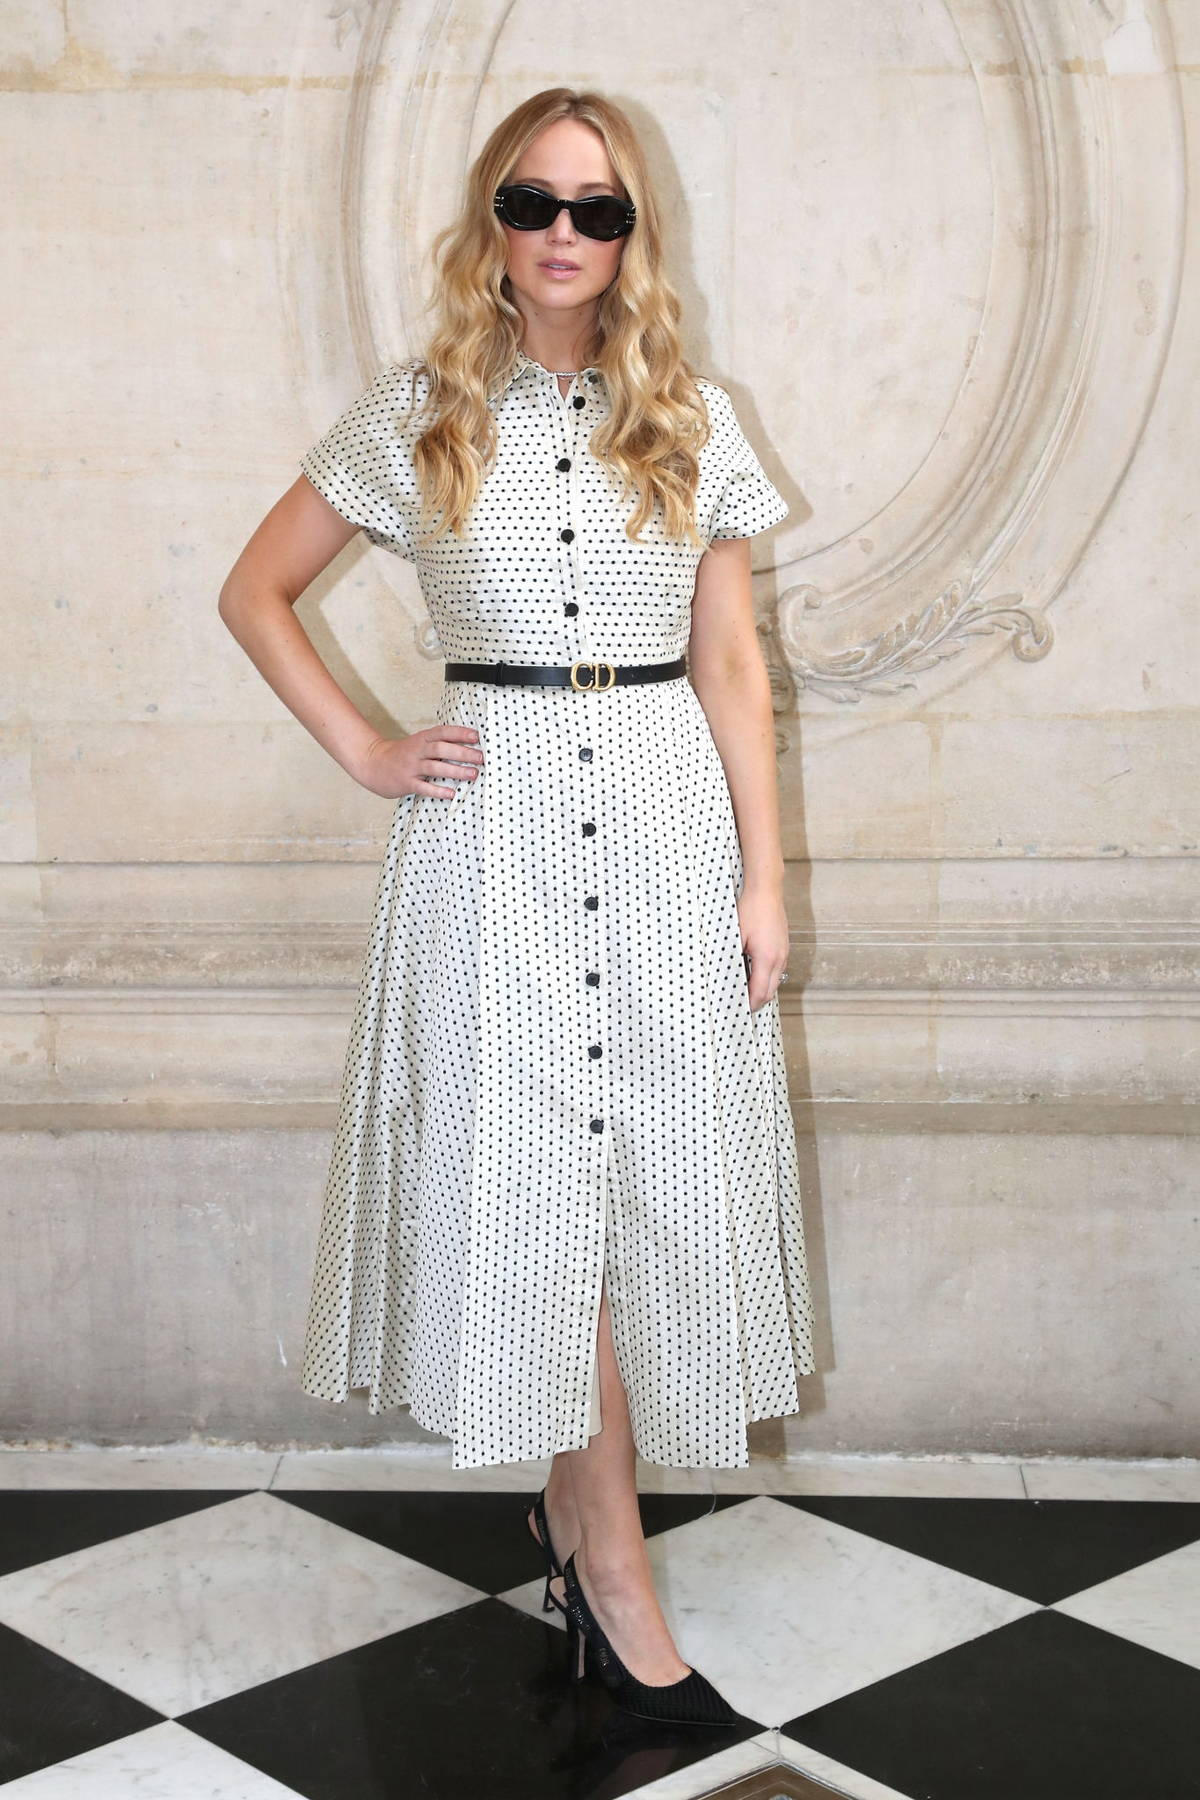 Jennifer Lawrence attends the Christian Dior Haute Couture Fall-Winter 2021-2022 show in Paris, France